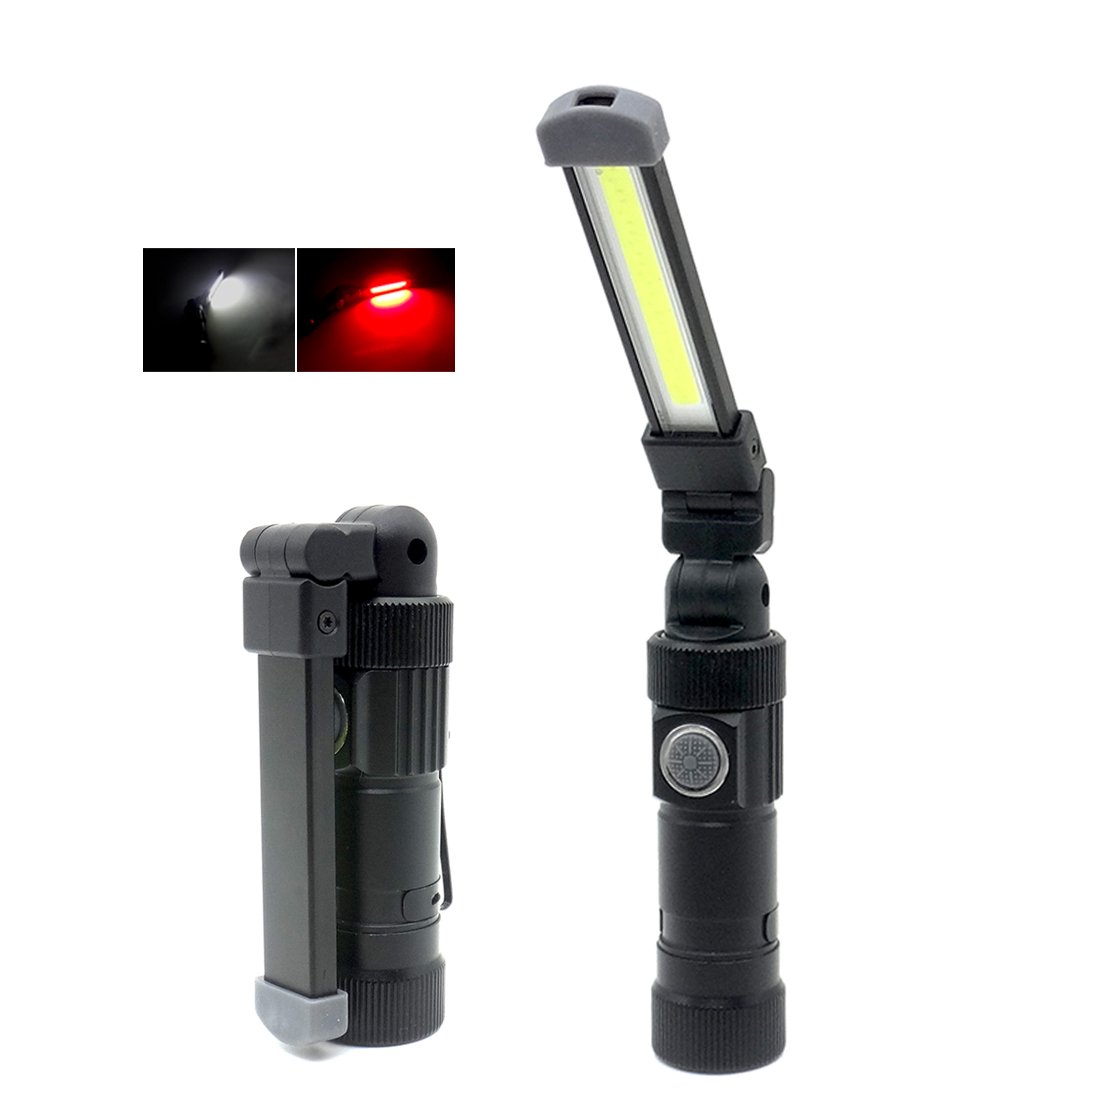 Multi-functional Magnetic COB LED Work Lamp USB Charging Hook Inspection Torch